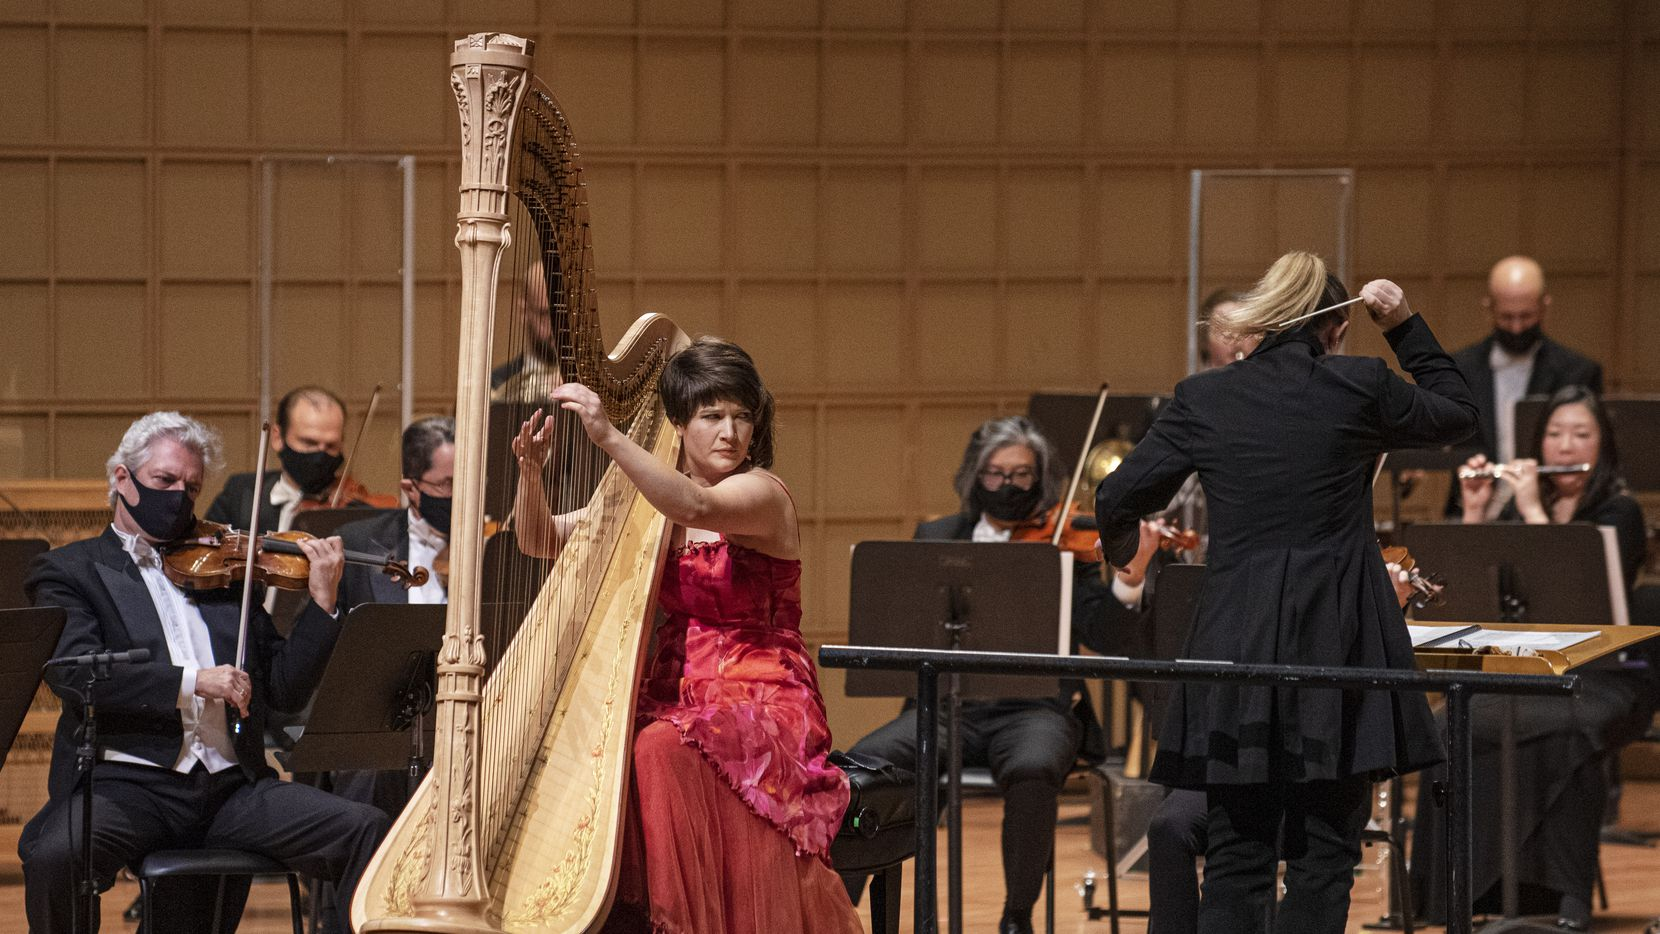 Harpist Emily Levin  and conductor Gemma New (right) perform Ginastera's Harp Concerto with the Dallas Symphony Orchestra at the Morton H. Meyerson Symphony Center in Dallas, Sept. 24, 2020.